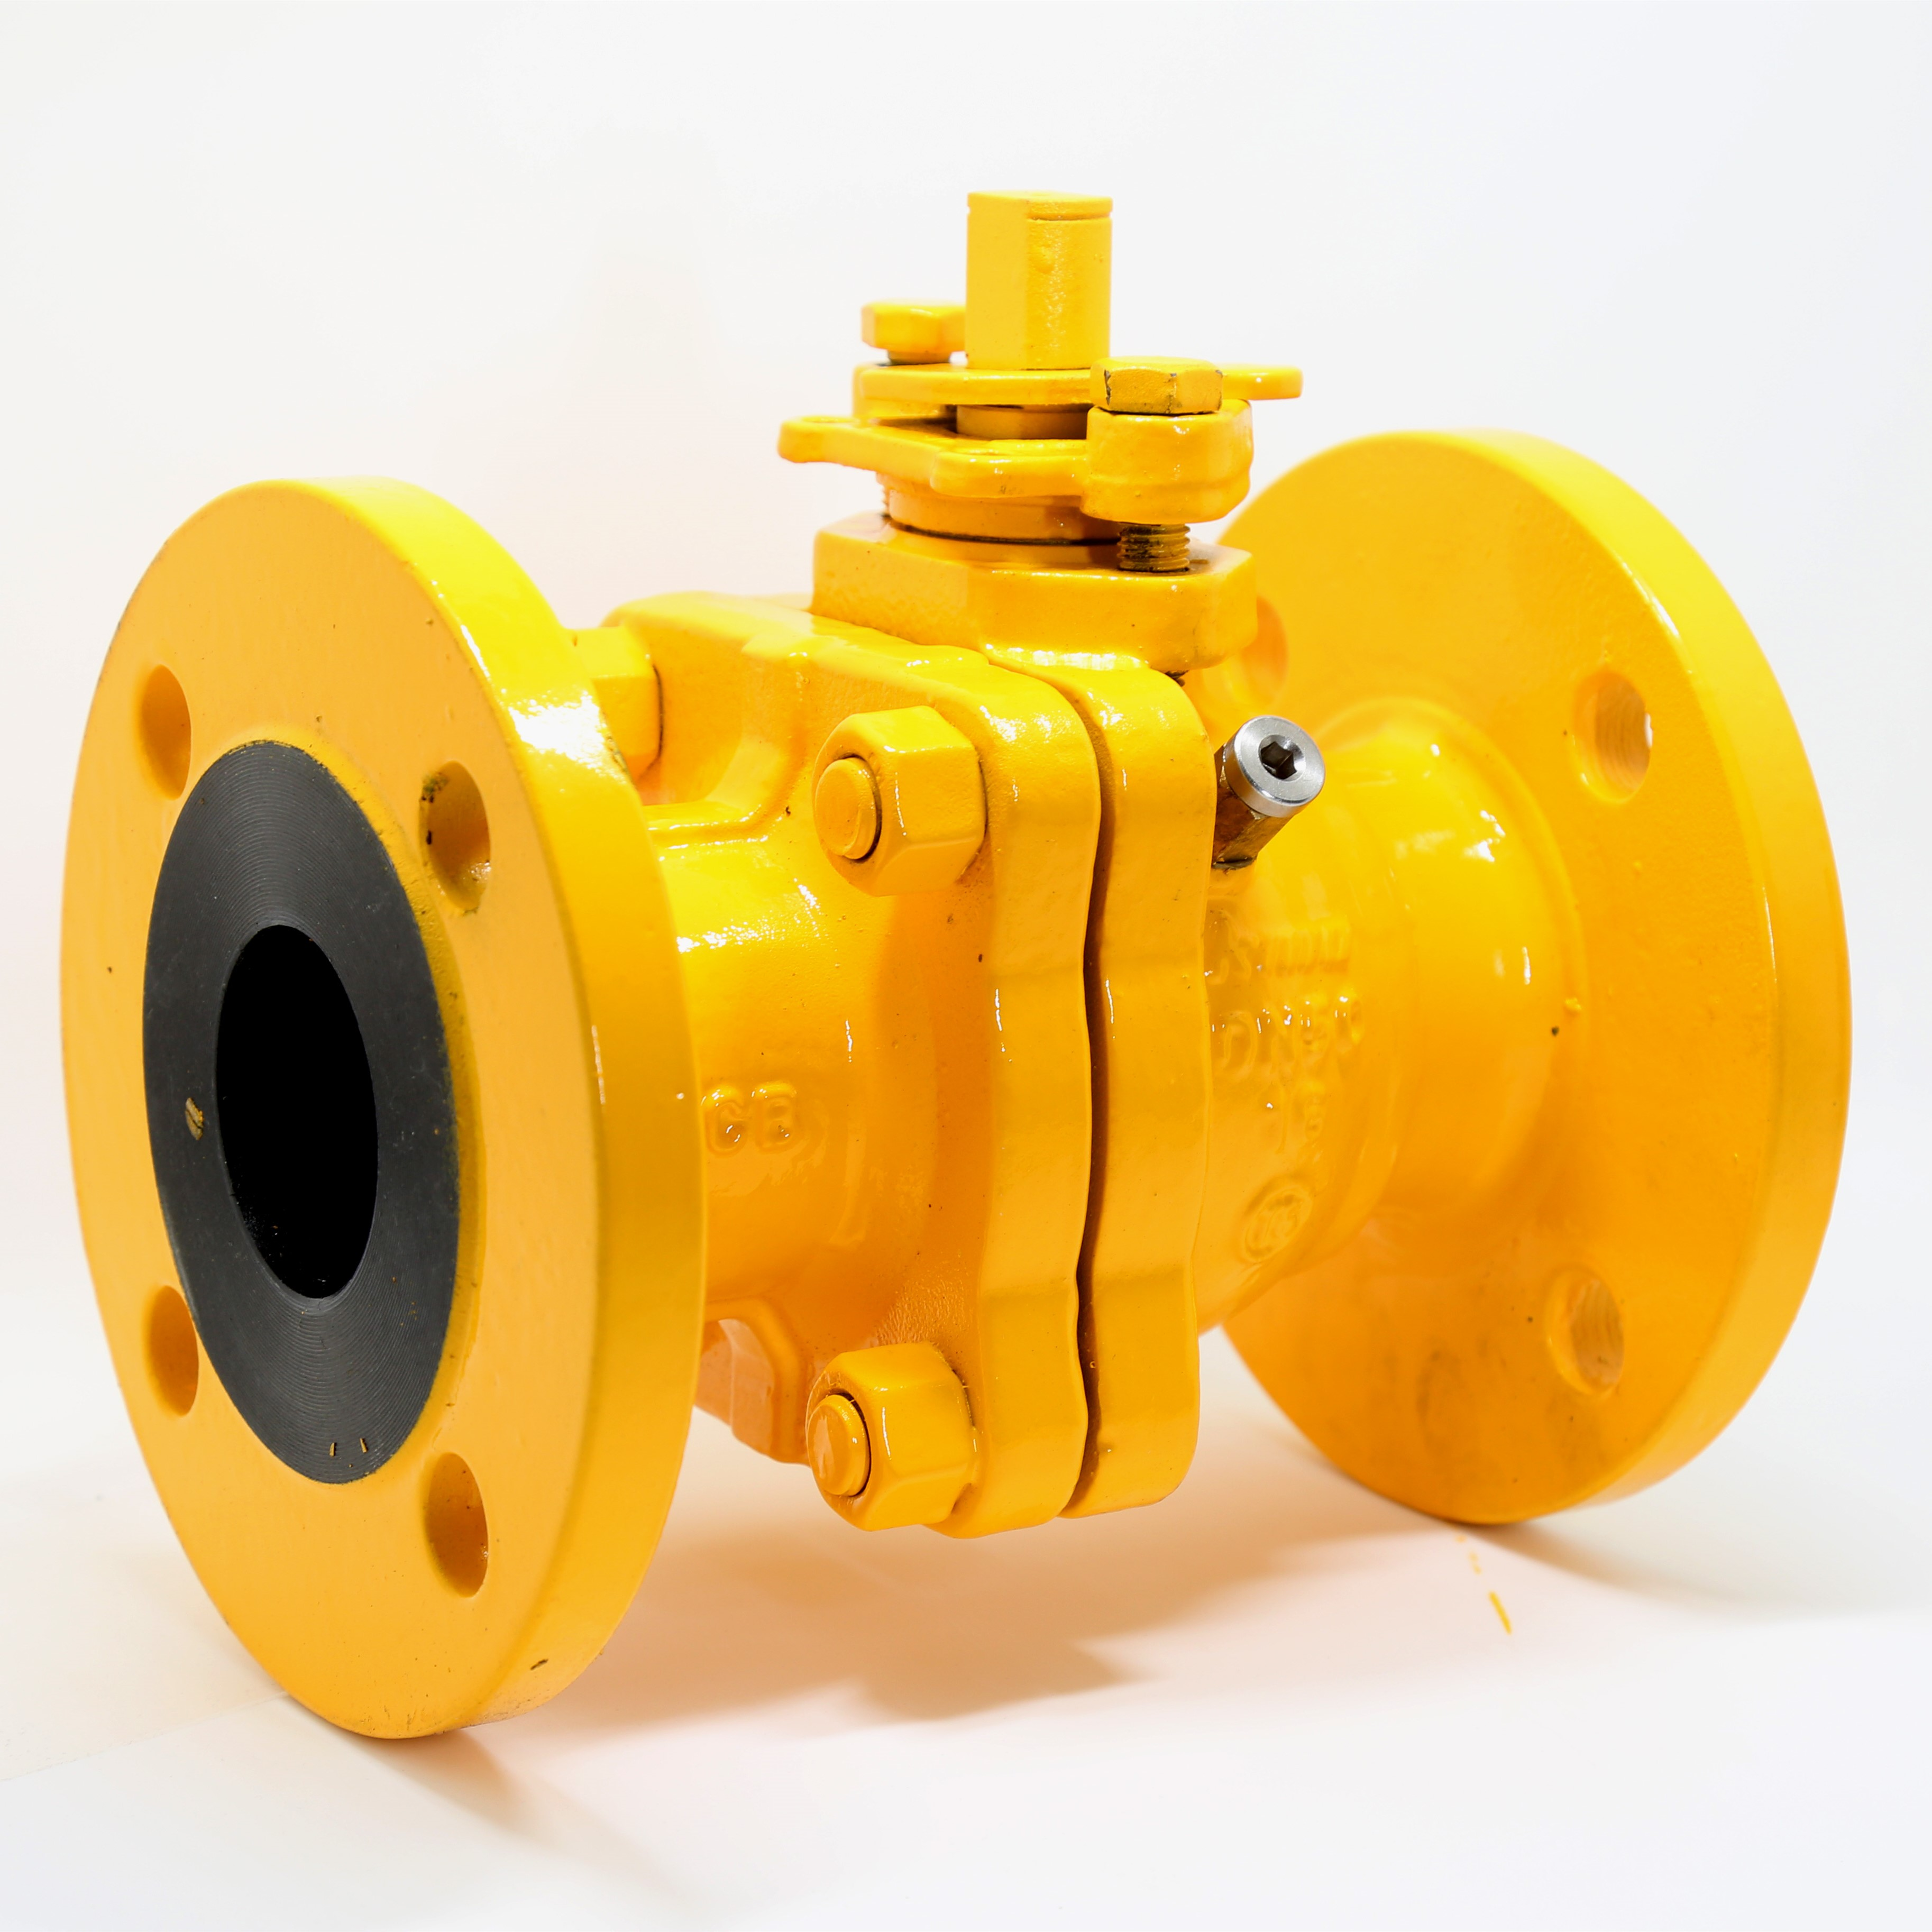 GB /JB / HG / DIN Manual Flange Fuel Gas 304 Solid Ball Valve